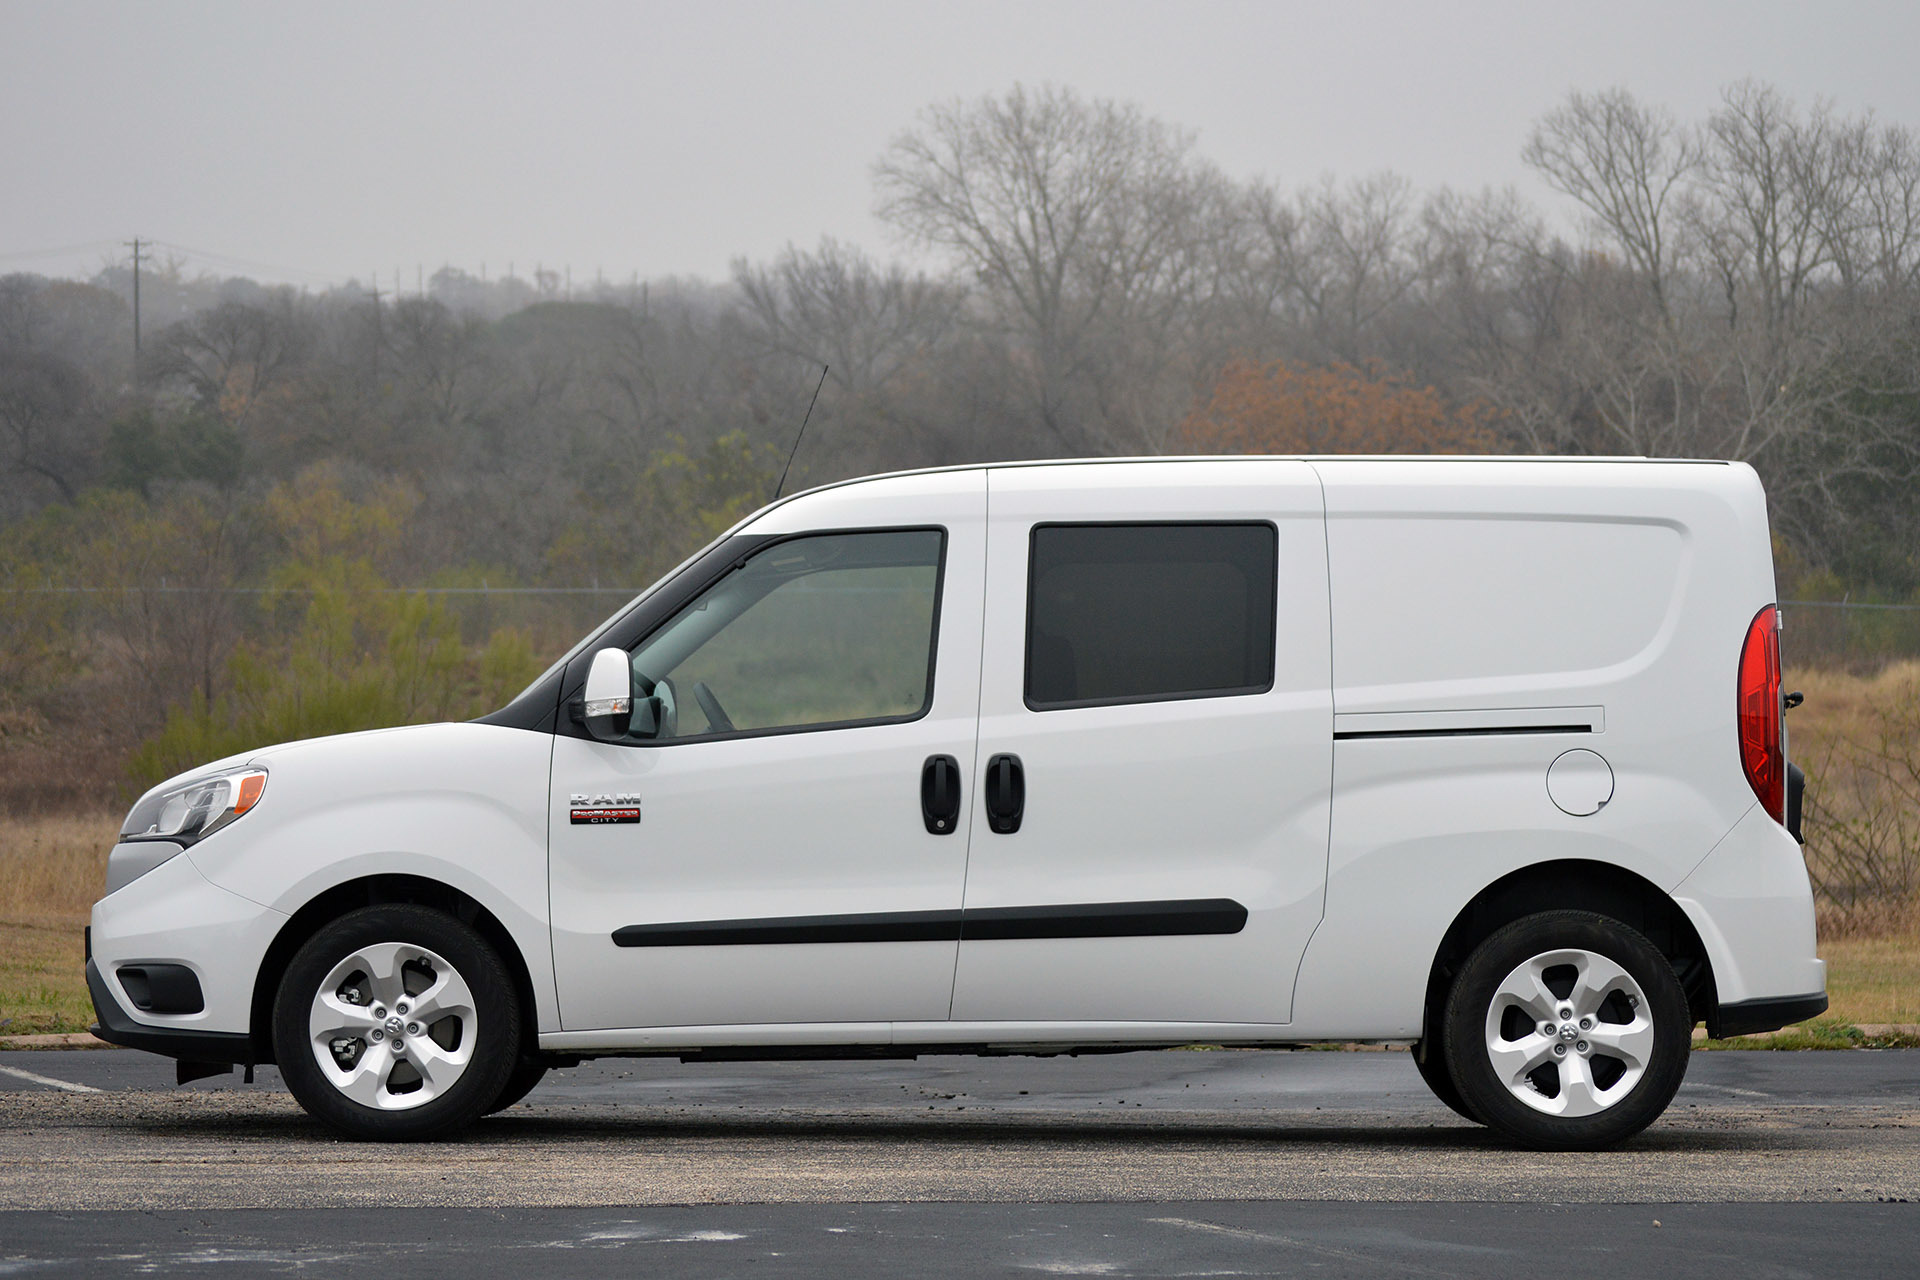 2015 ram promaster city first drive photo gallery autoblog. Black Bedroom Furniture Sets. Home Design Ideas